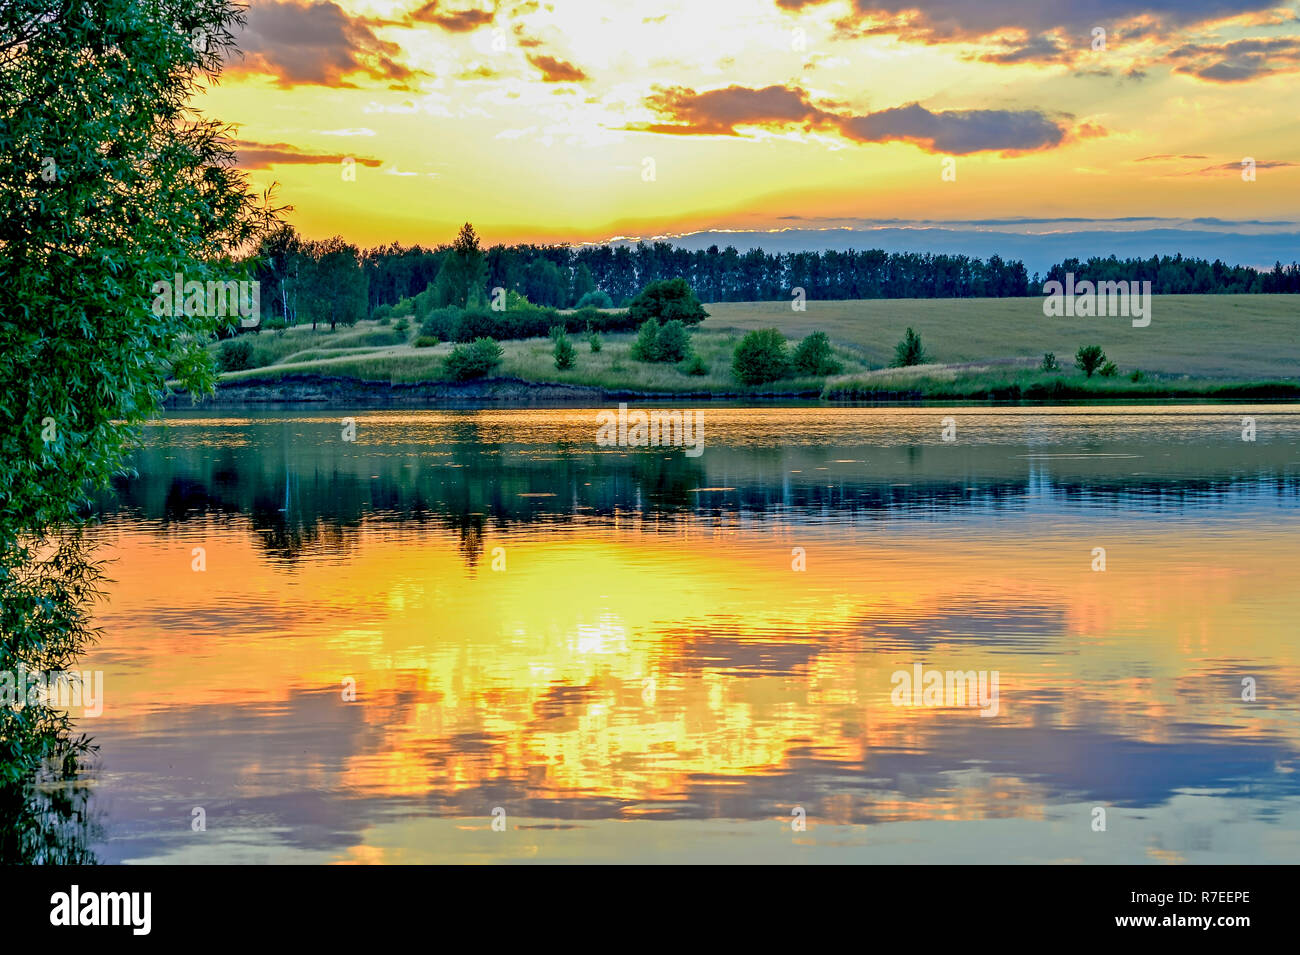 Evening landscape screensaver on the lake with the reflection in the water of the evening sky filled with sun. Background. Stock Photo